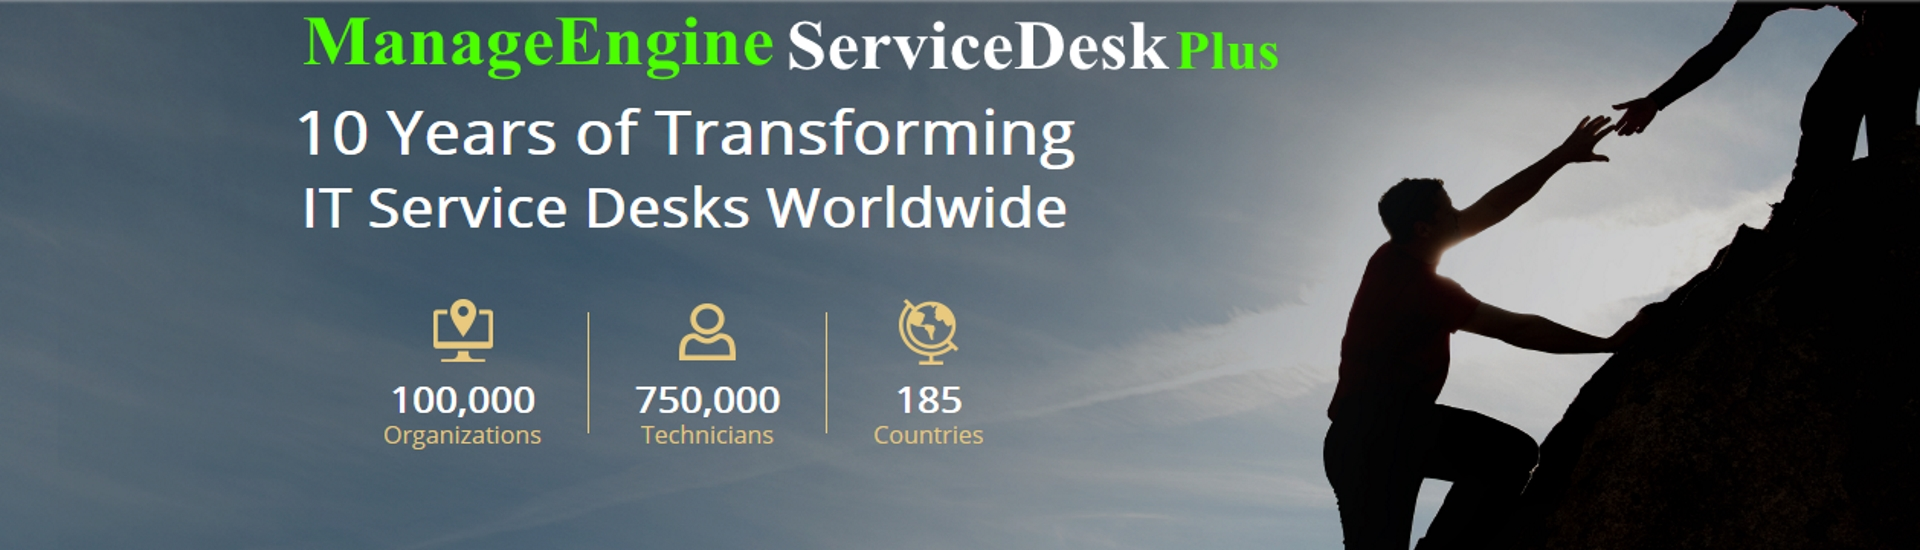 ManageEngine ServiceDesk Plus-Features